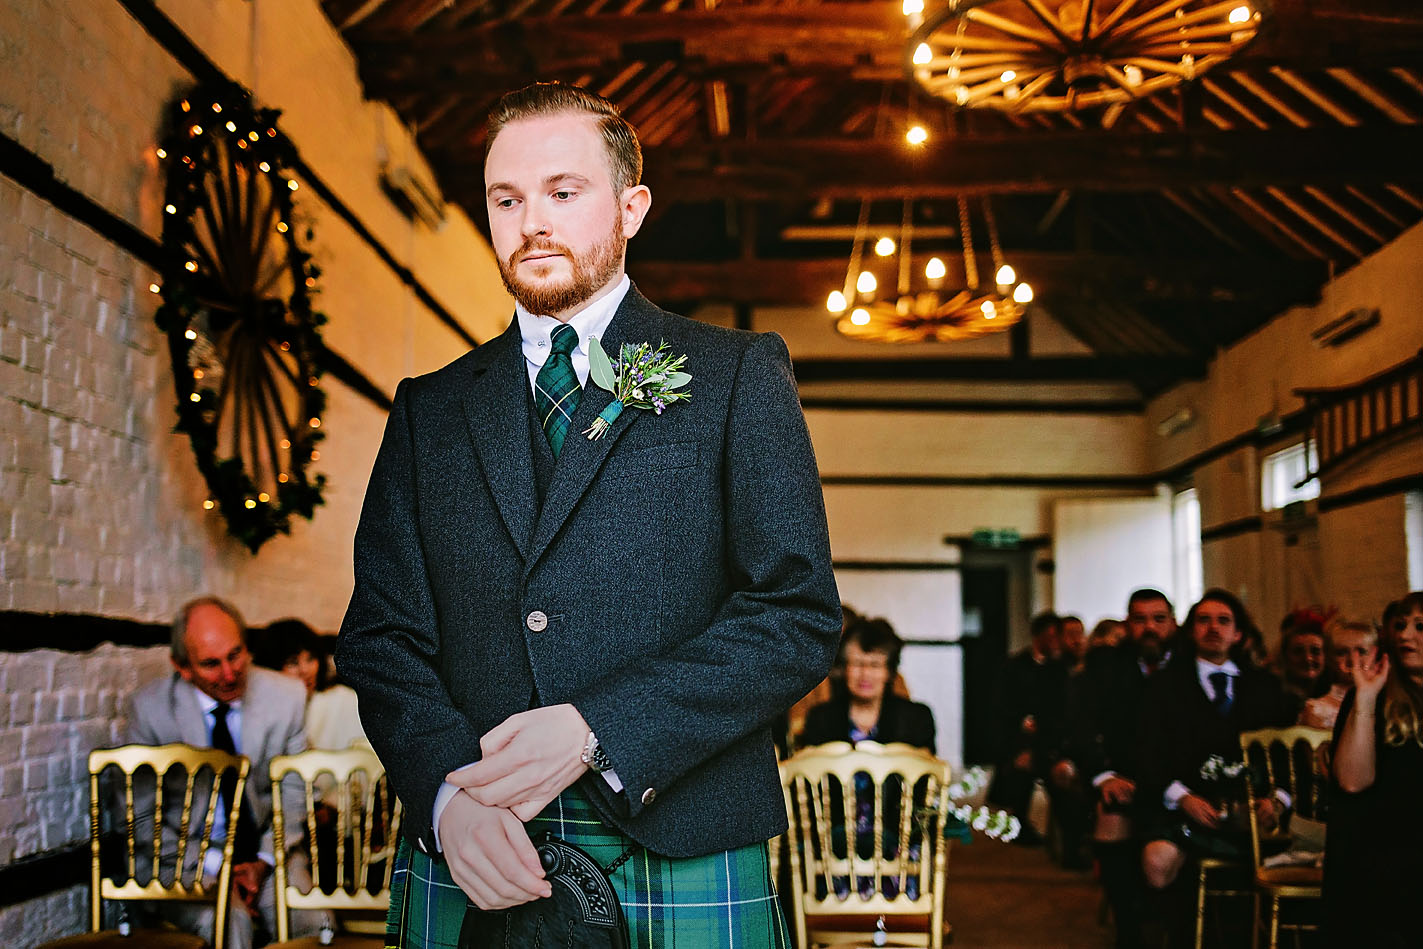 Groom wearing kilt wedding outfit waiting for his bride to walk down the aisle at Lillibrooke Manor and Barns Wedding venue